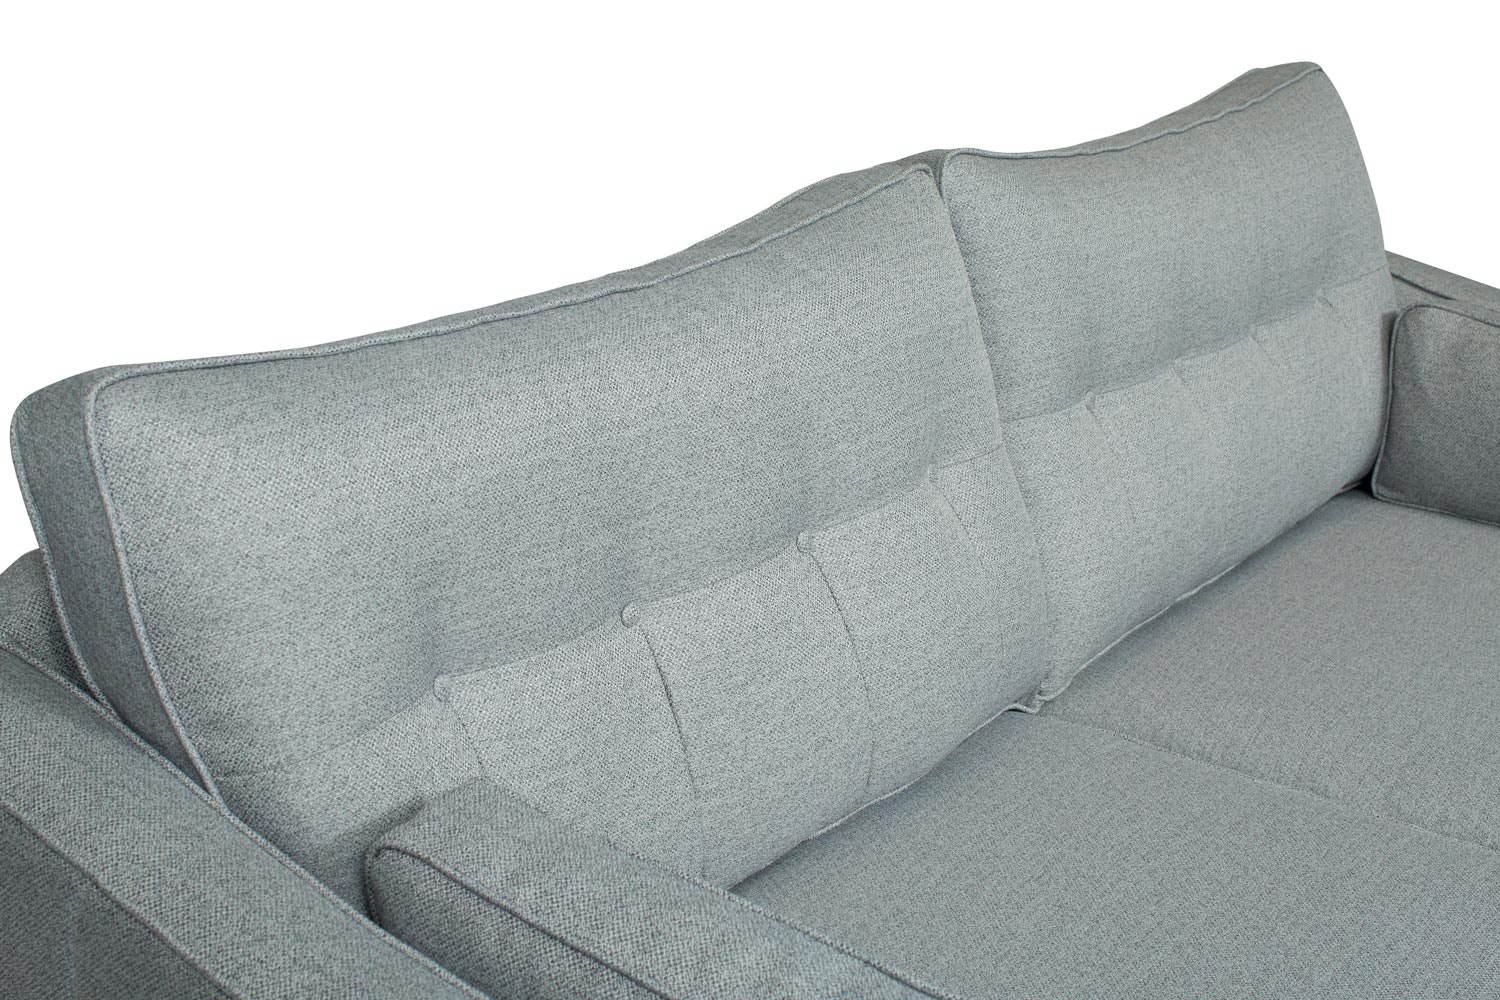 Roxy 4 Seater Sofa